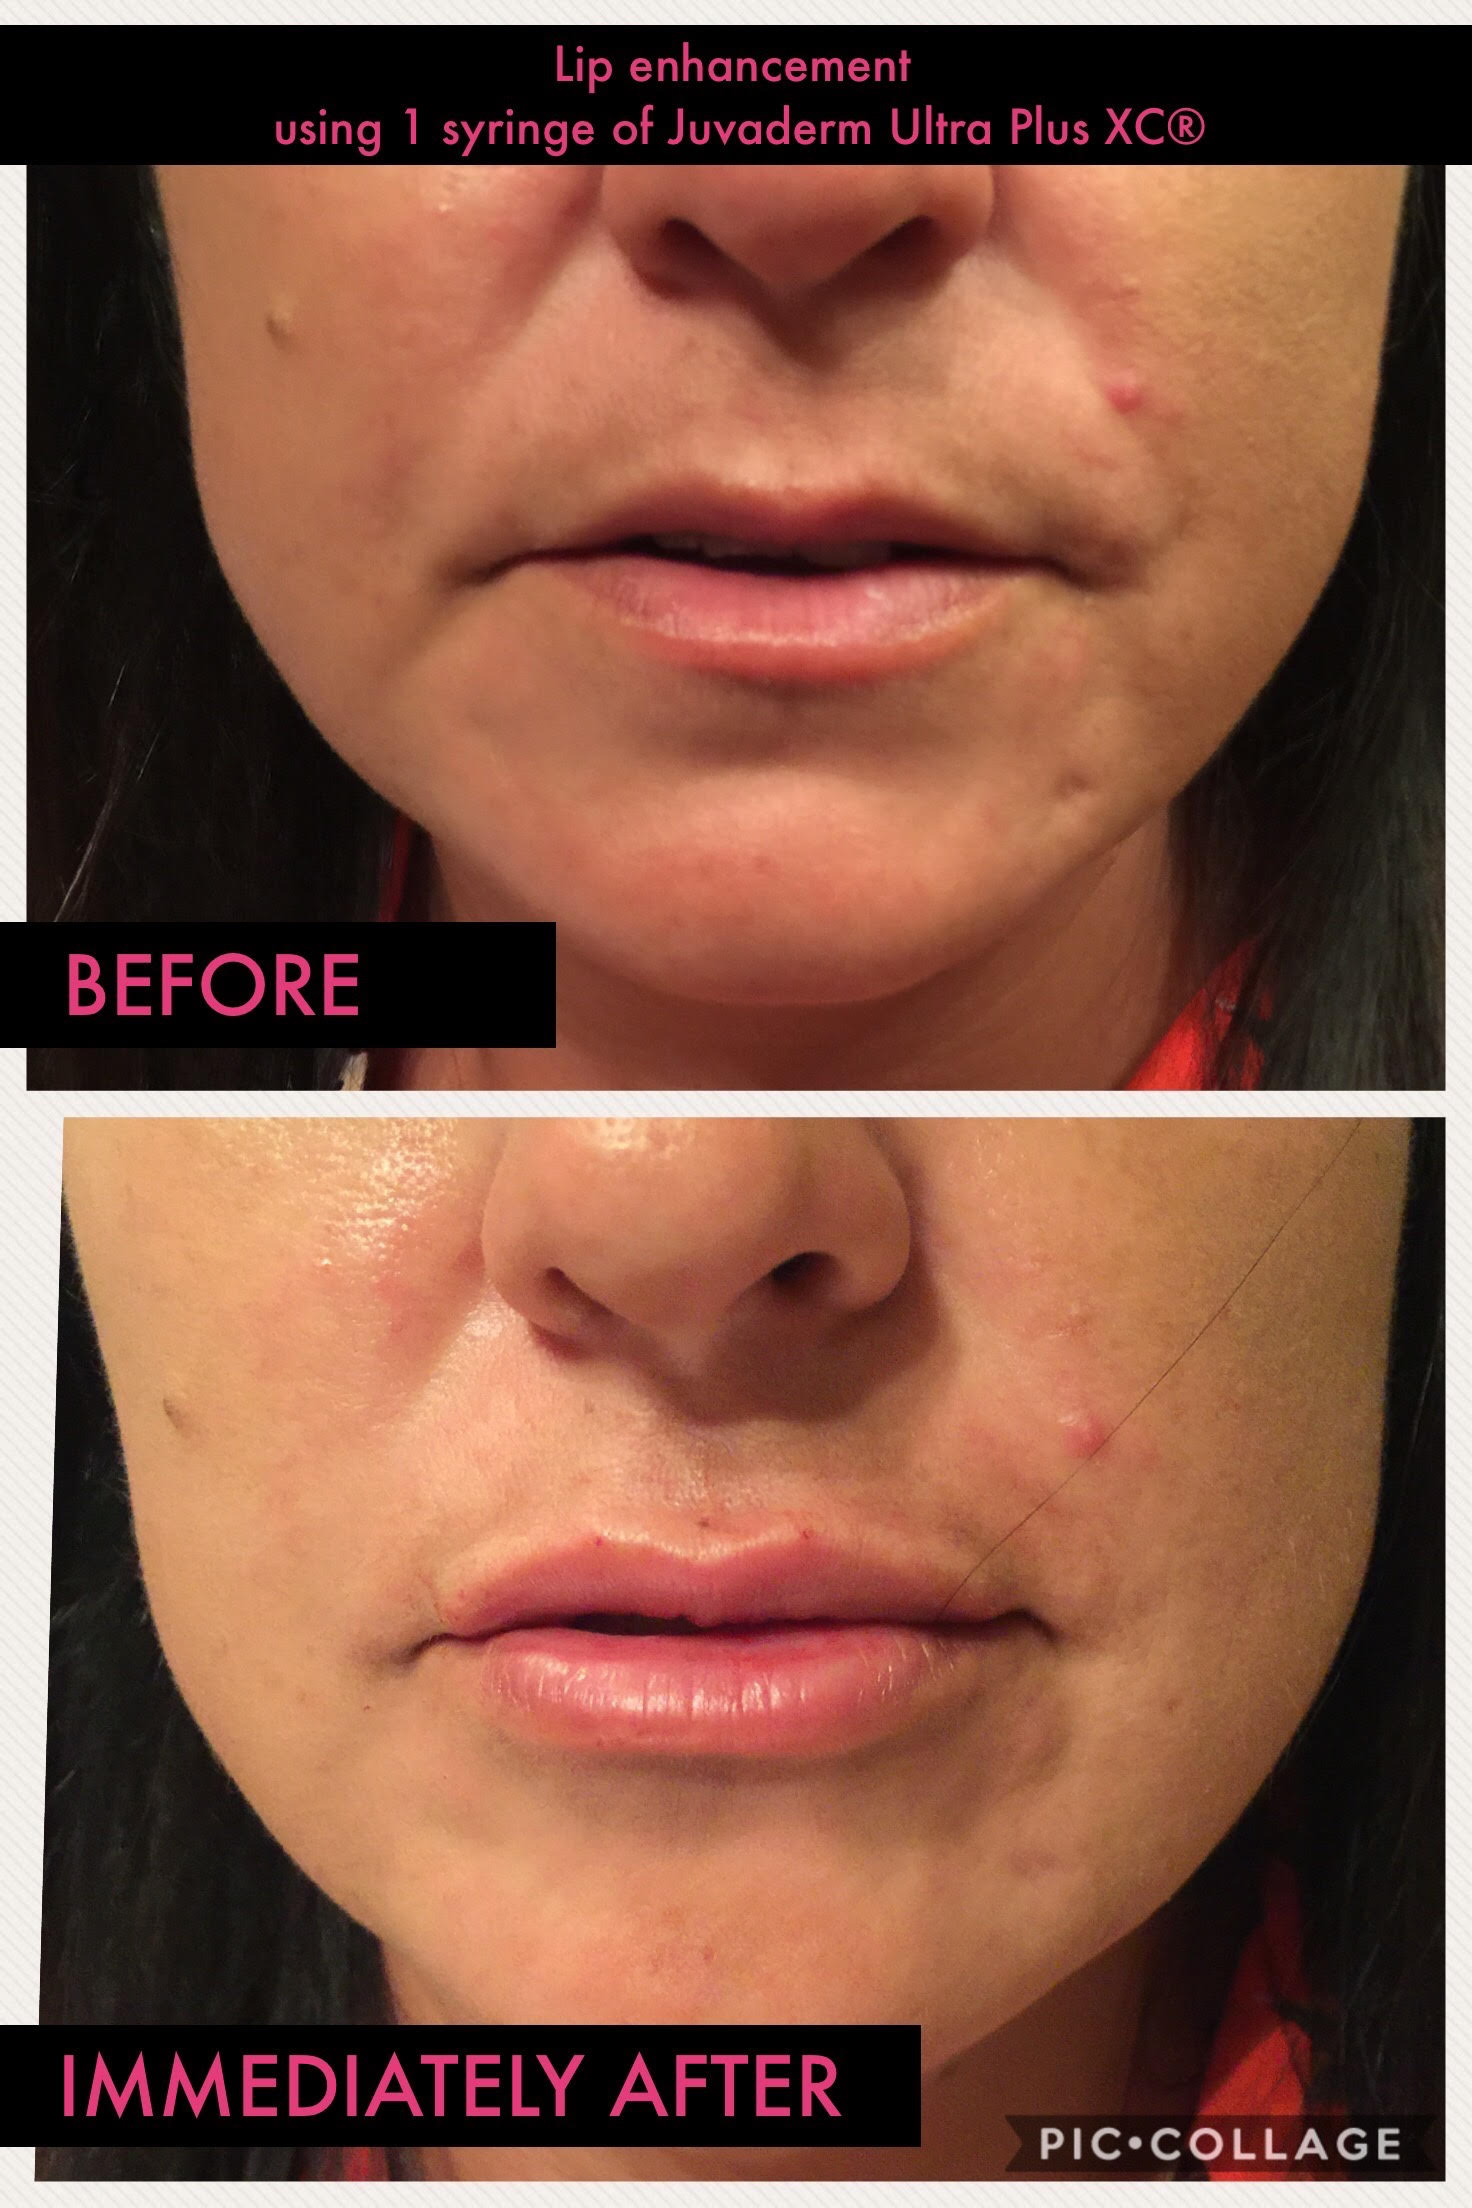 Dermal Fillers Before and After 5 -Glam RN